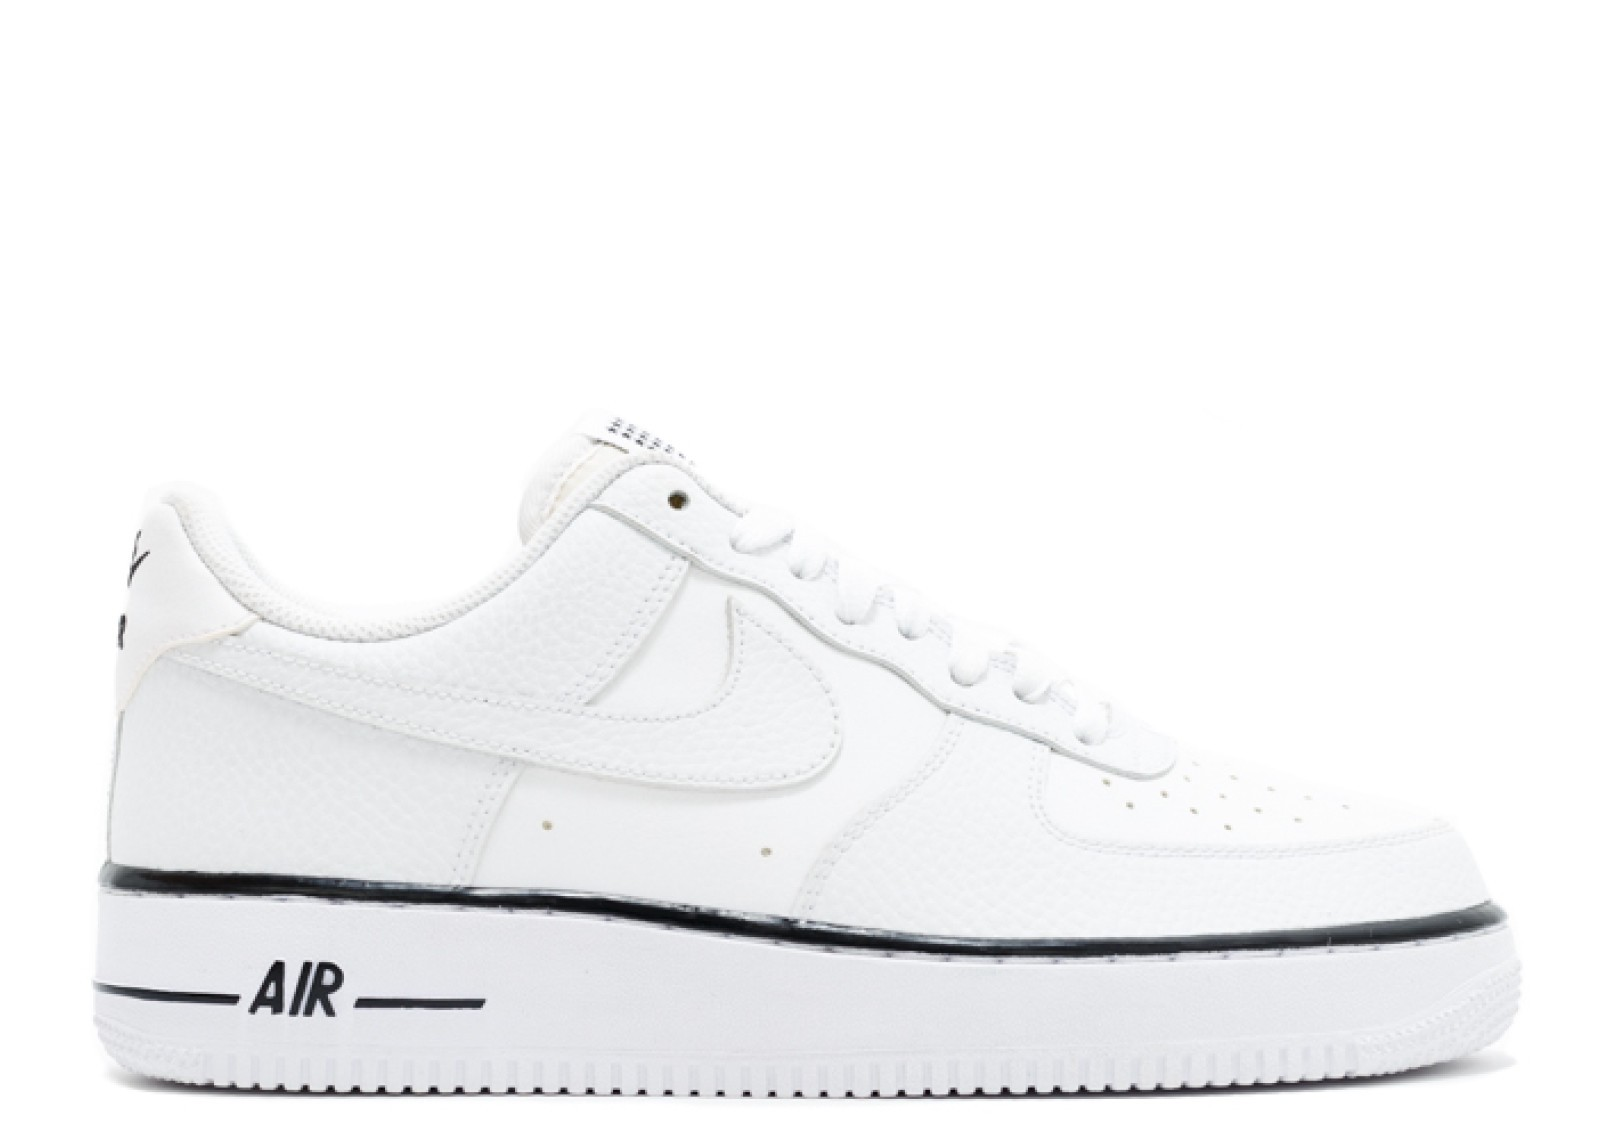 Nike Air Force 1 Low 488298-160 - Bianche/Nere